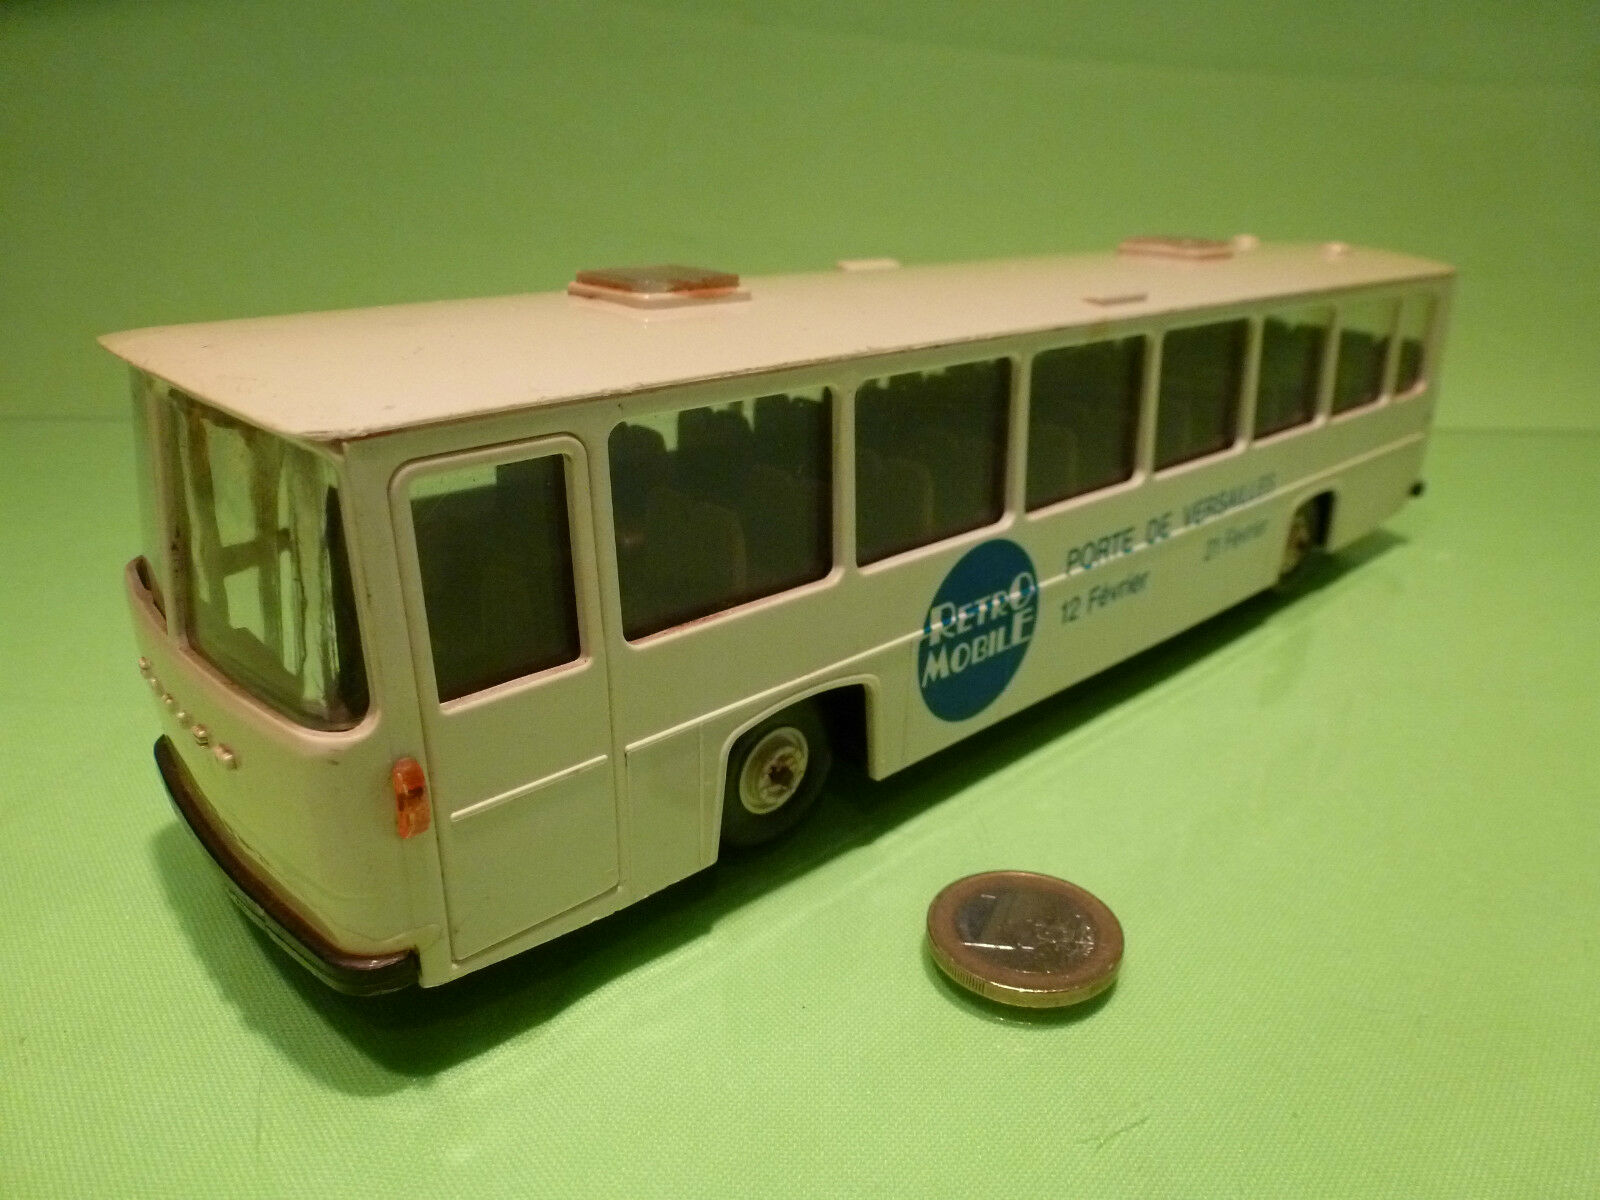 PLASTIC SAVIEM BUS RETRO MOBILE - PORTE DE VERSAILLES - 1 43 - GOOD CONDITION